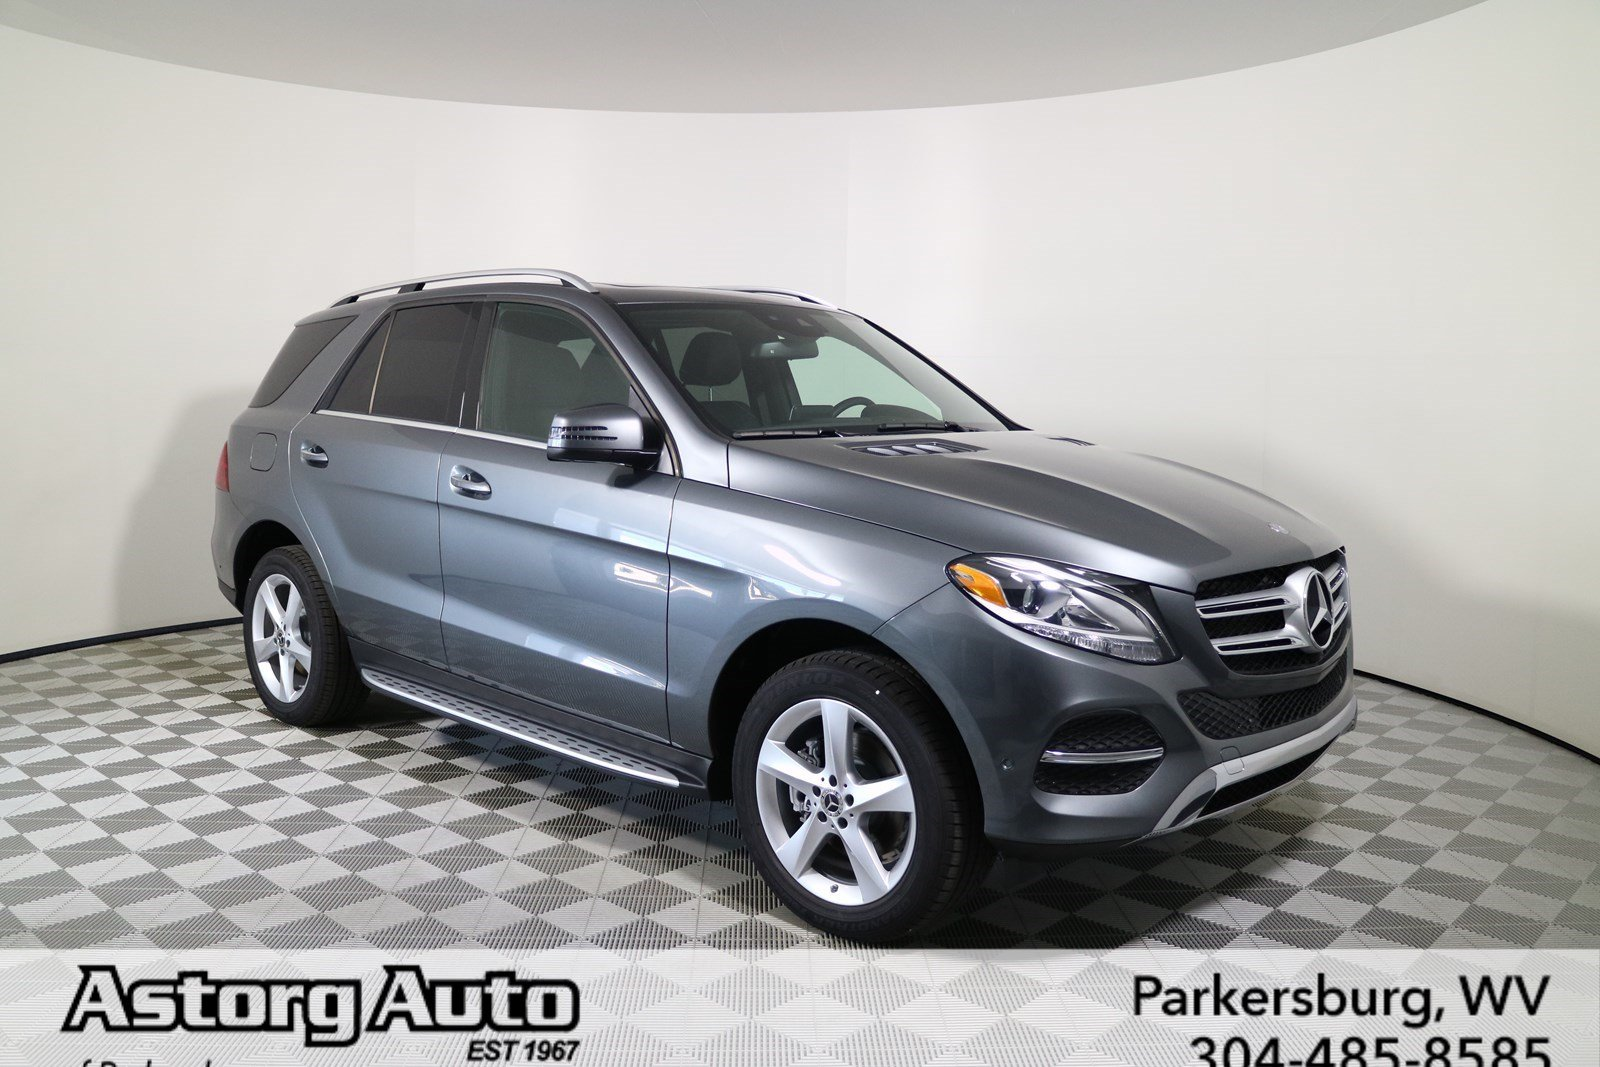 New 2017 mercedes benz gle gle 350 suv in parkersburg for Mercedes benz clk 350 suv